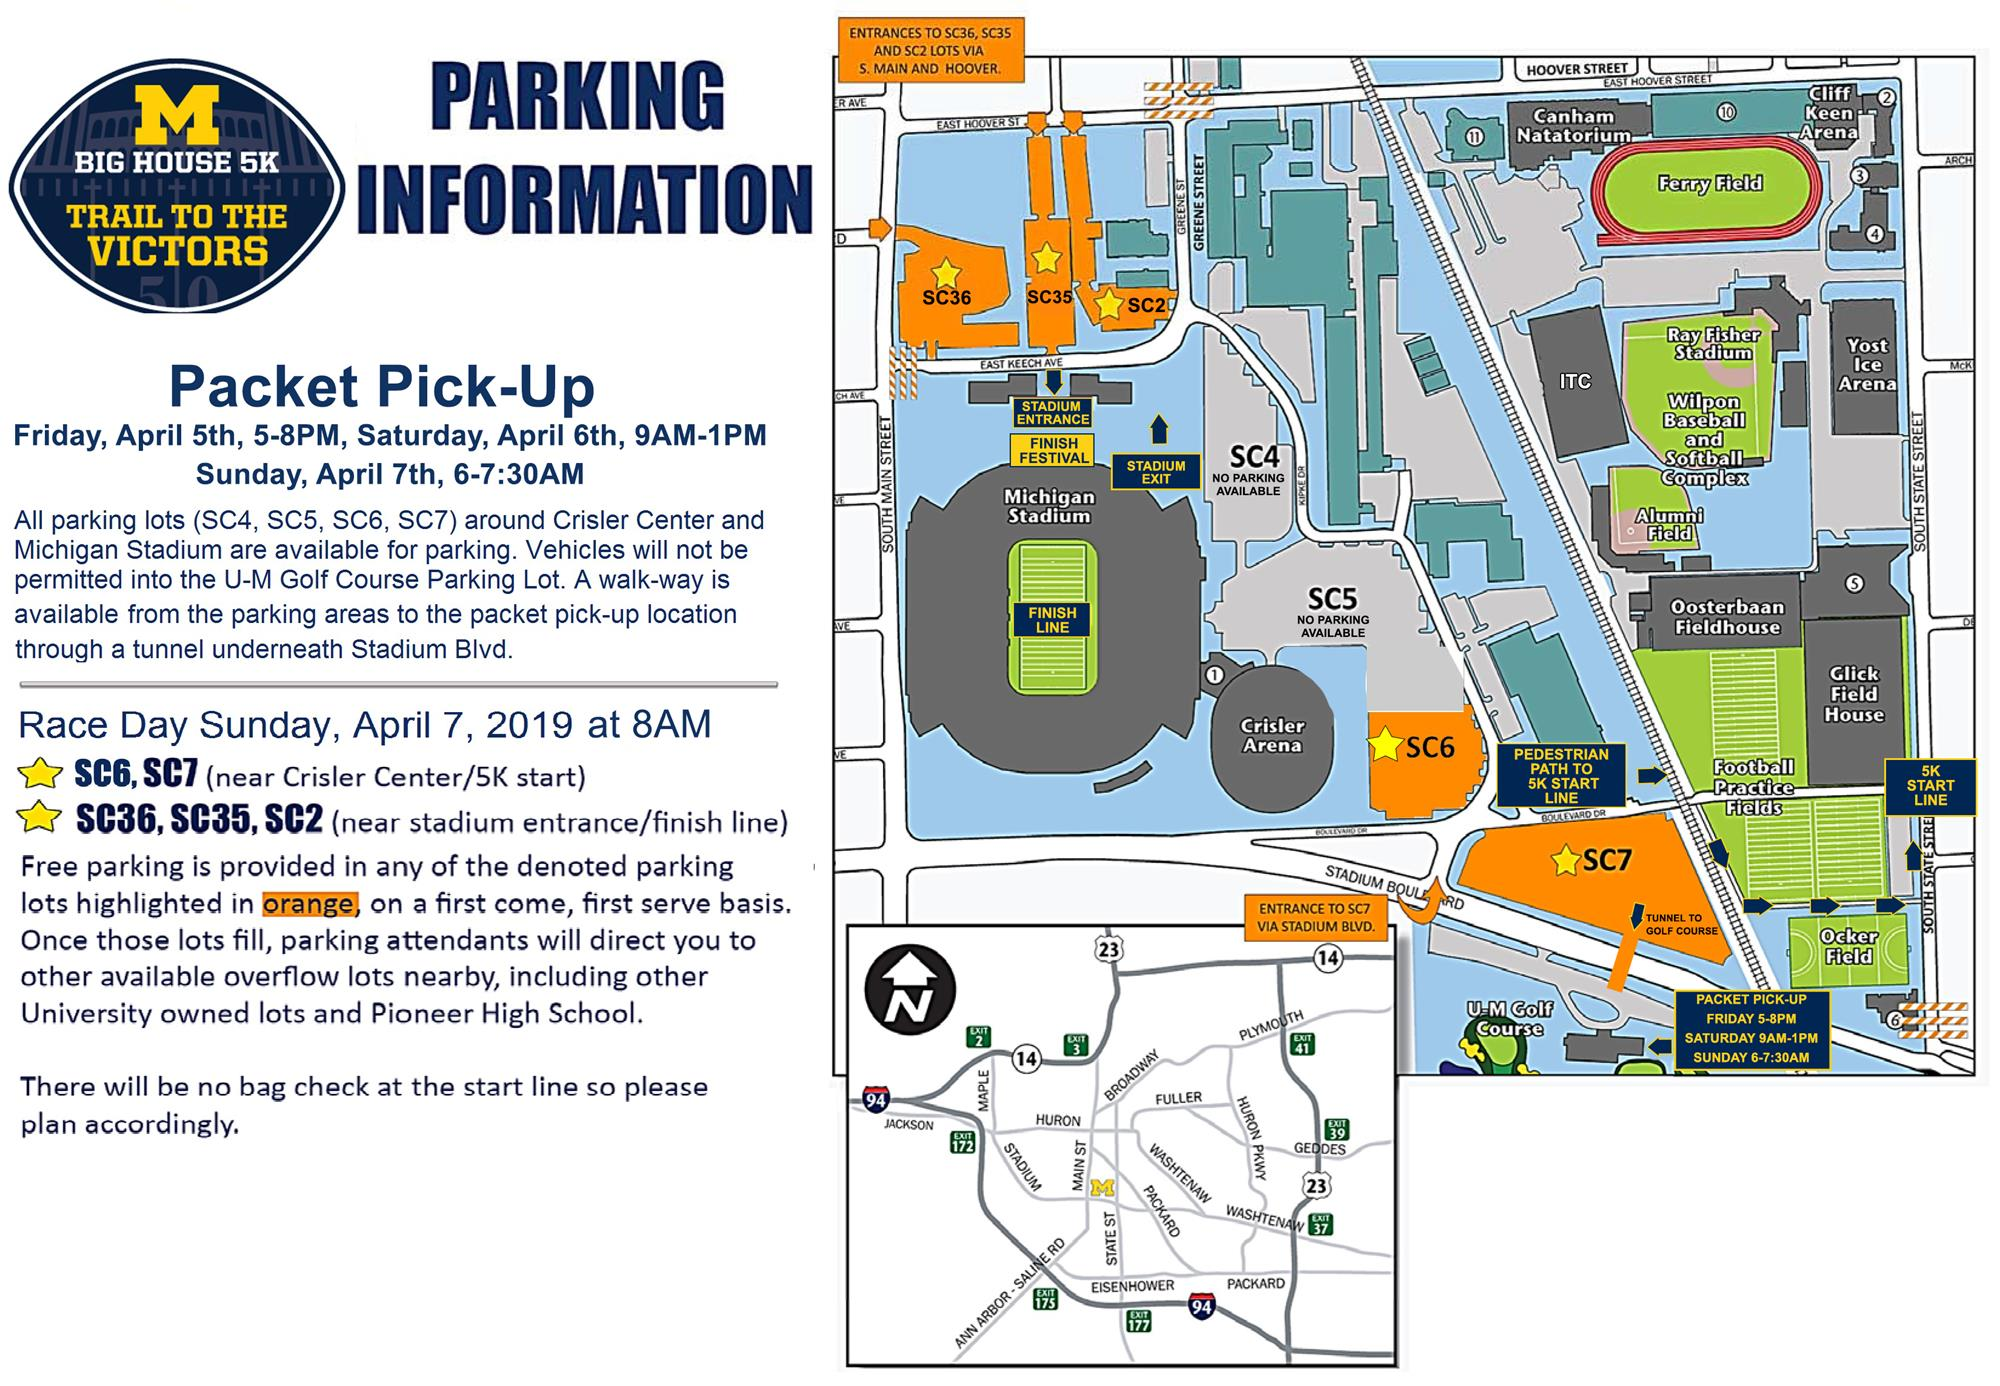 Big House 5K: Informational Maps - University of Michigan Athletics